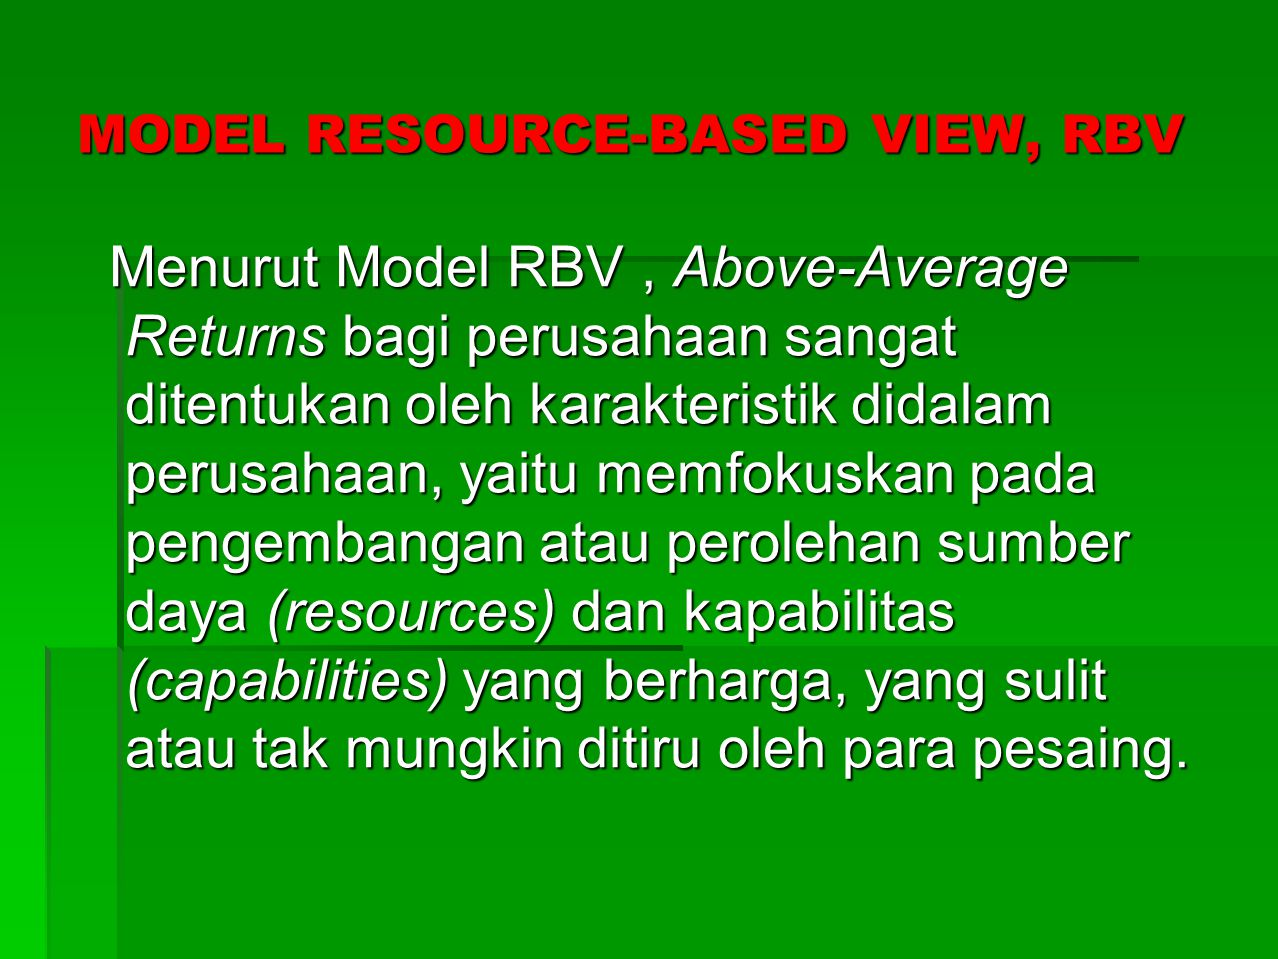 MODEL RESOURCE-BASED VIEW, RBV